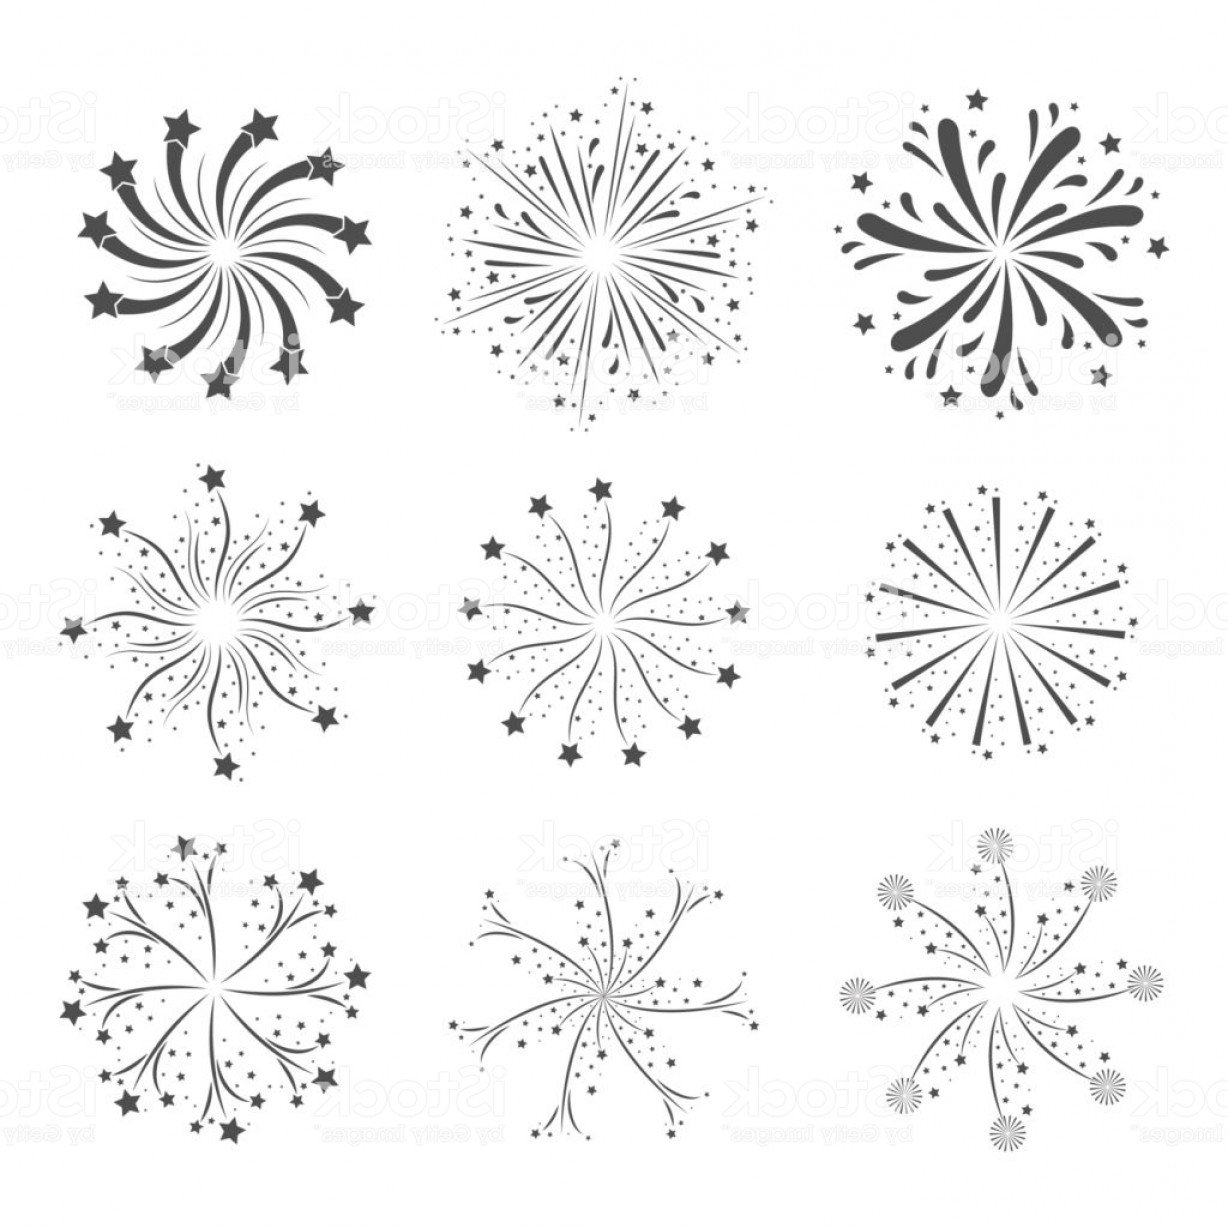 Vector-Based Grayscale Christmas: Fireworks Flashes Set In Grayscale Silhouette Over White Background Gm